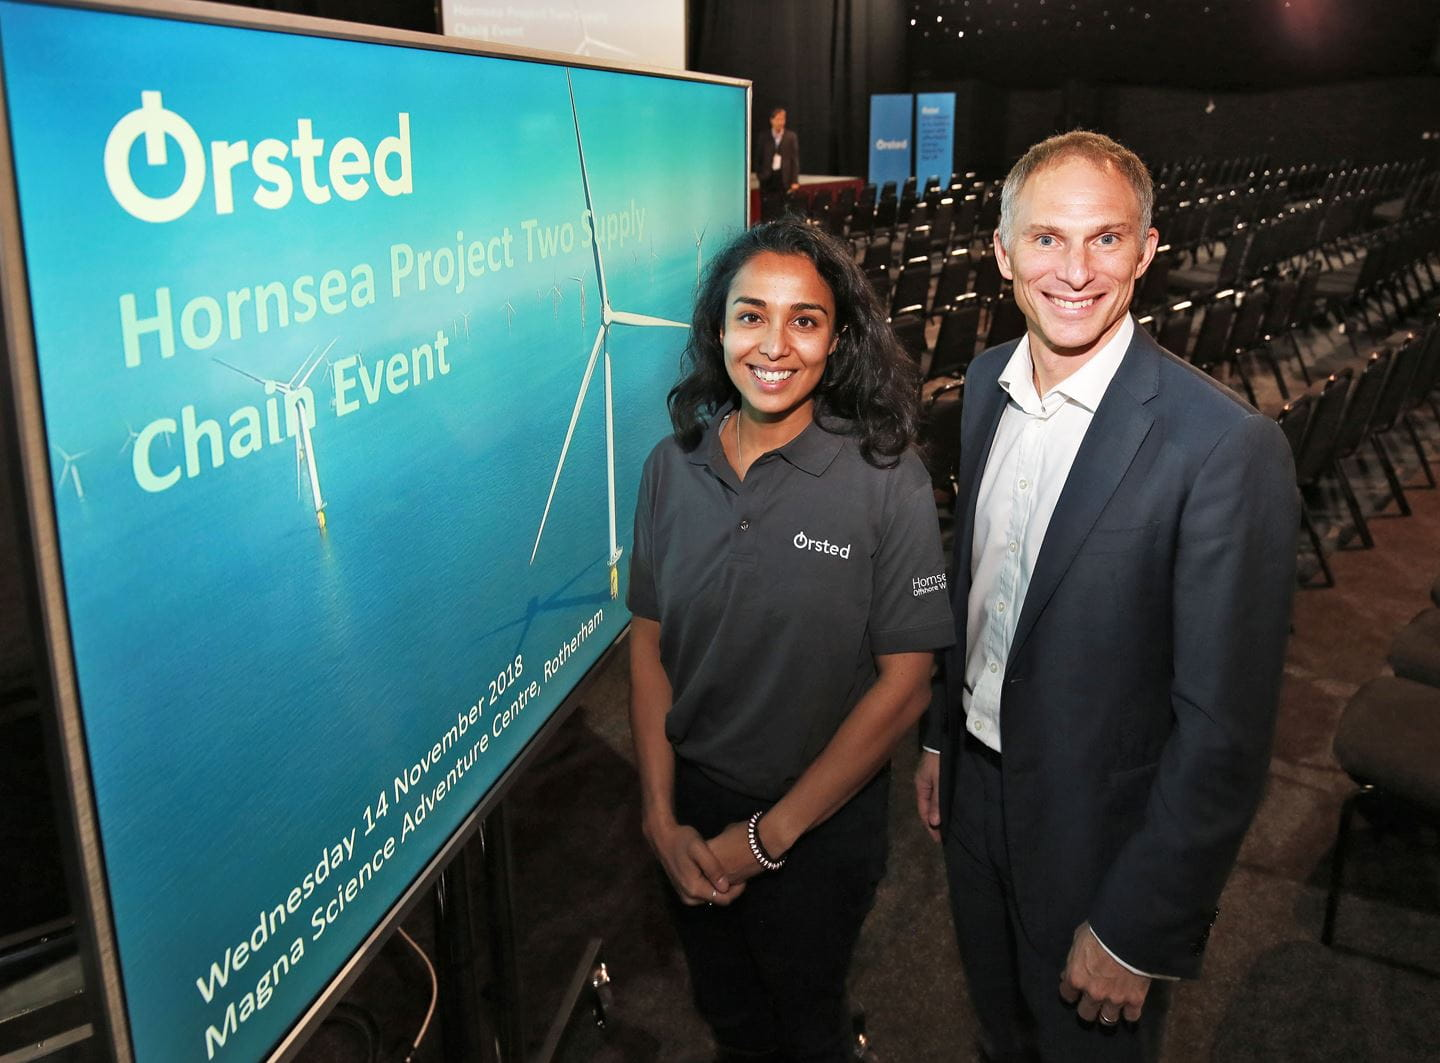 Hornsea Project Two supply chain event